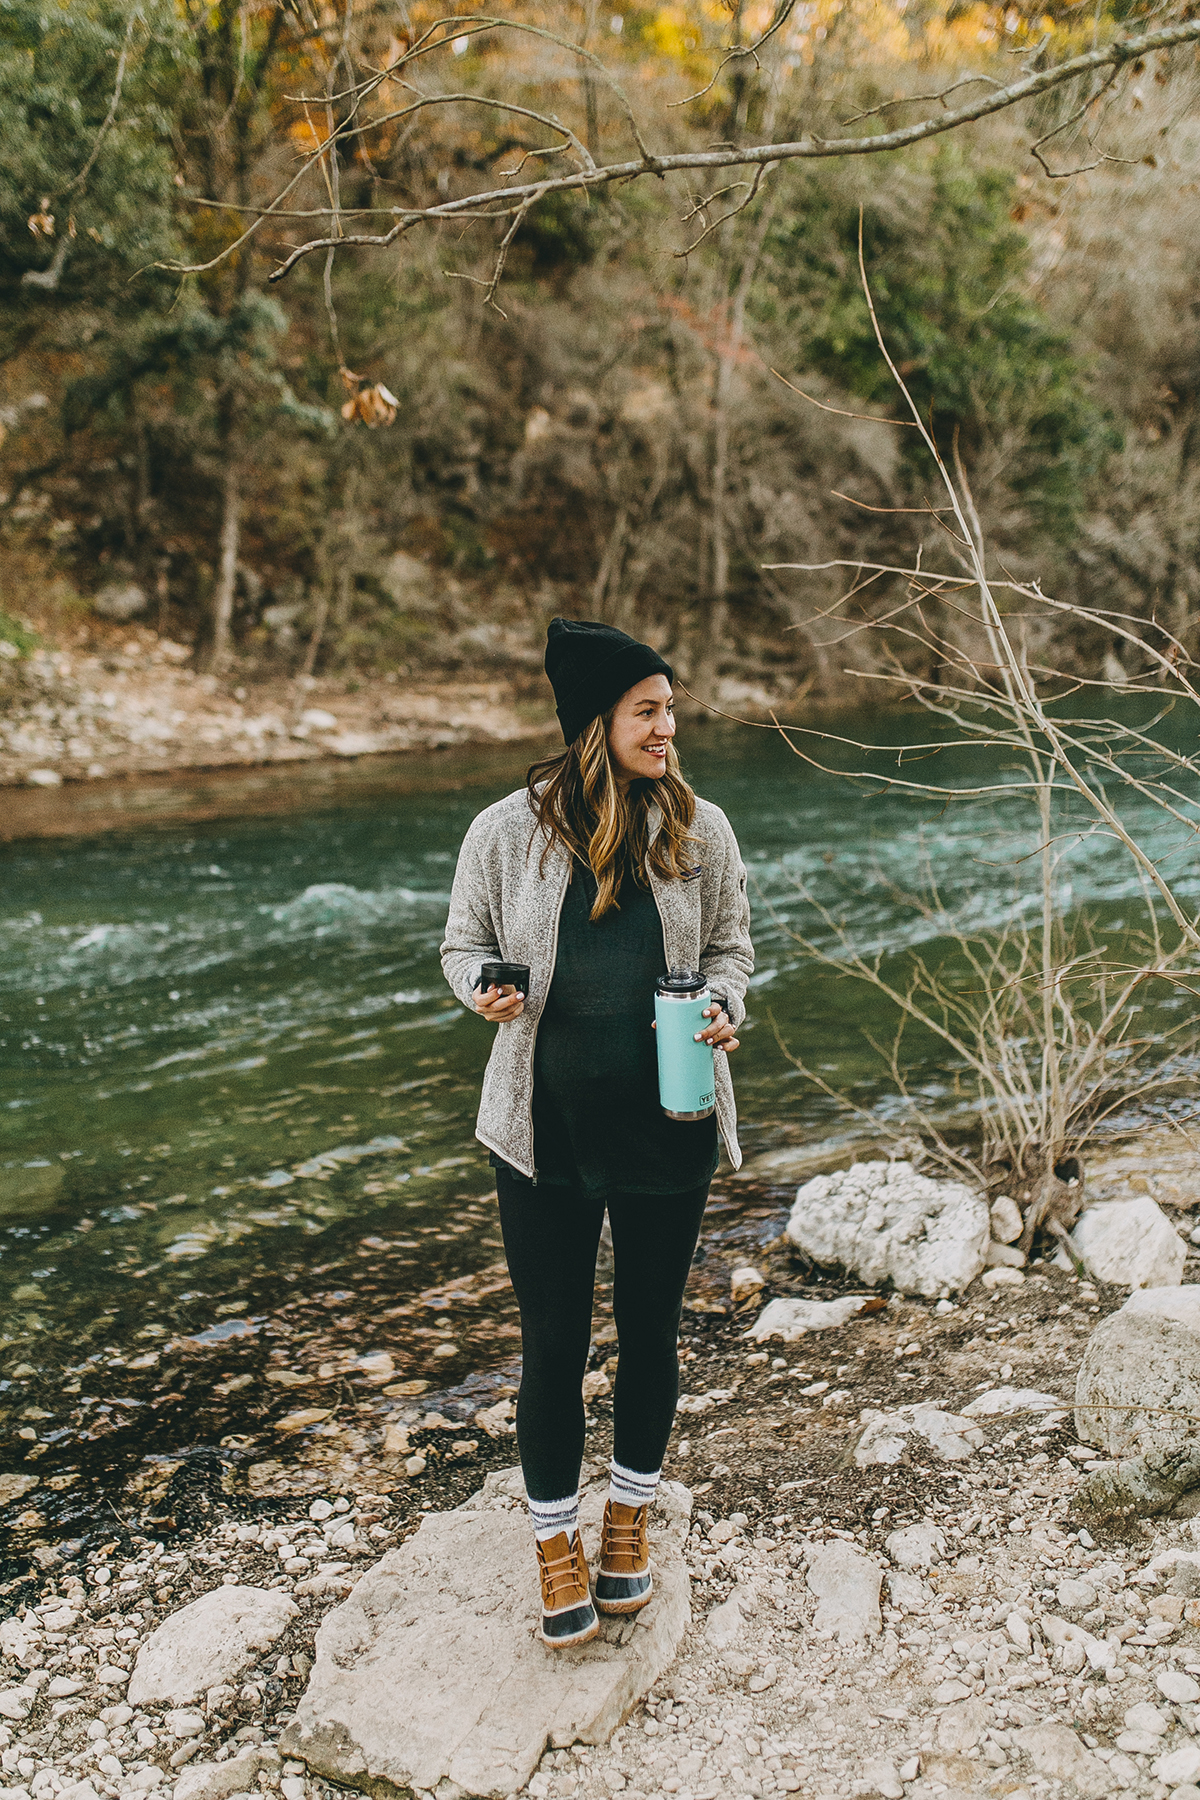 livvyland-blog-olivia-watson-austin-texas-fashion-lifestyle-blogger-backcountry-patagonia-better-sweater-jacket-sorel-hiking-boots-yeti-rambler-bottle-hiking-outfit-2